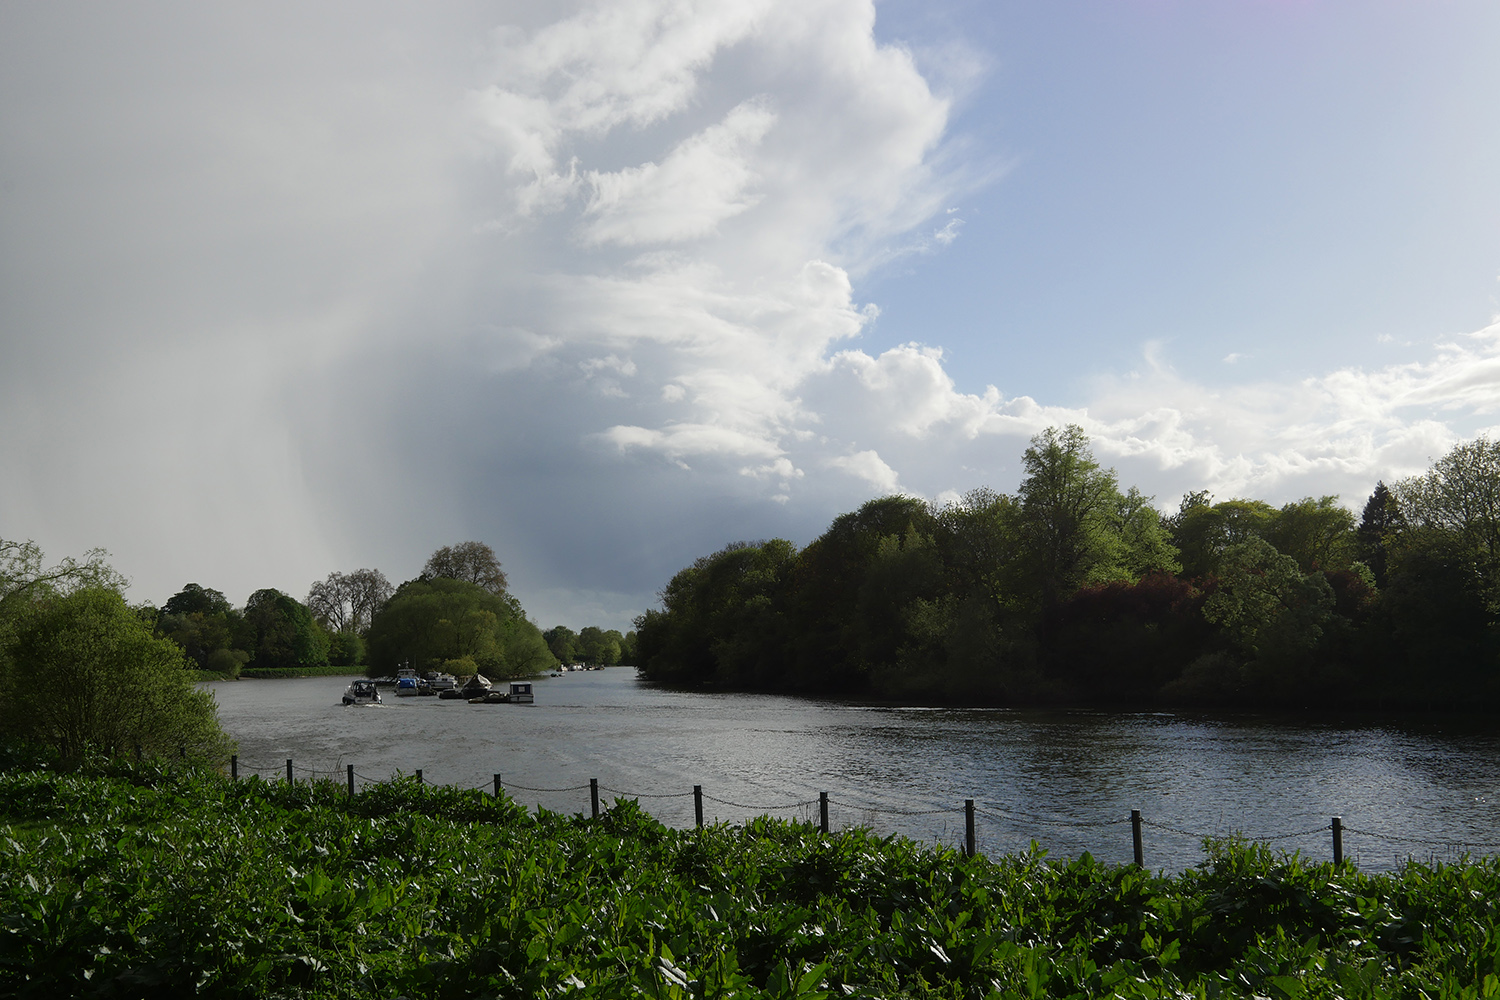 The Thames at Petersham Meadows